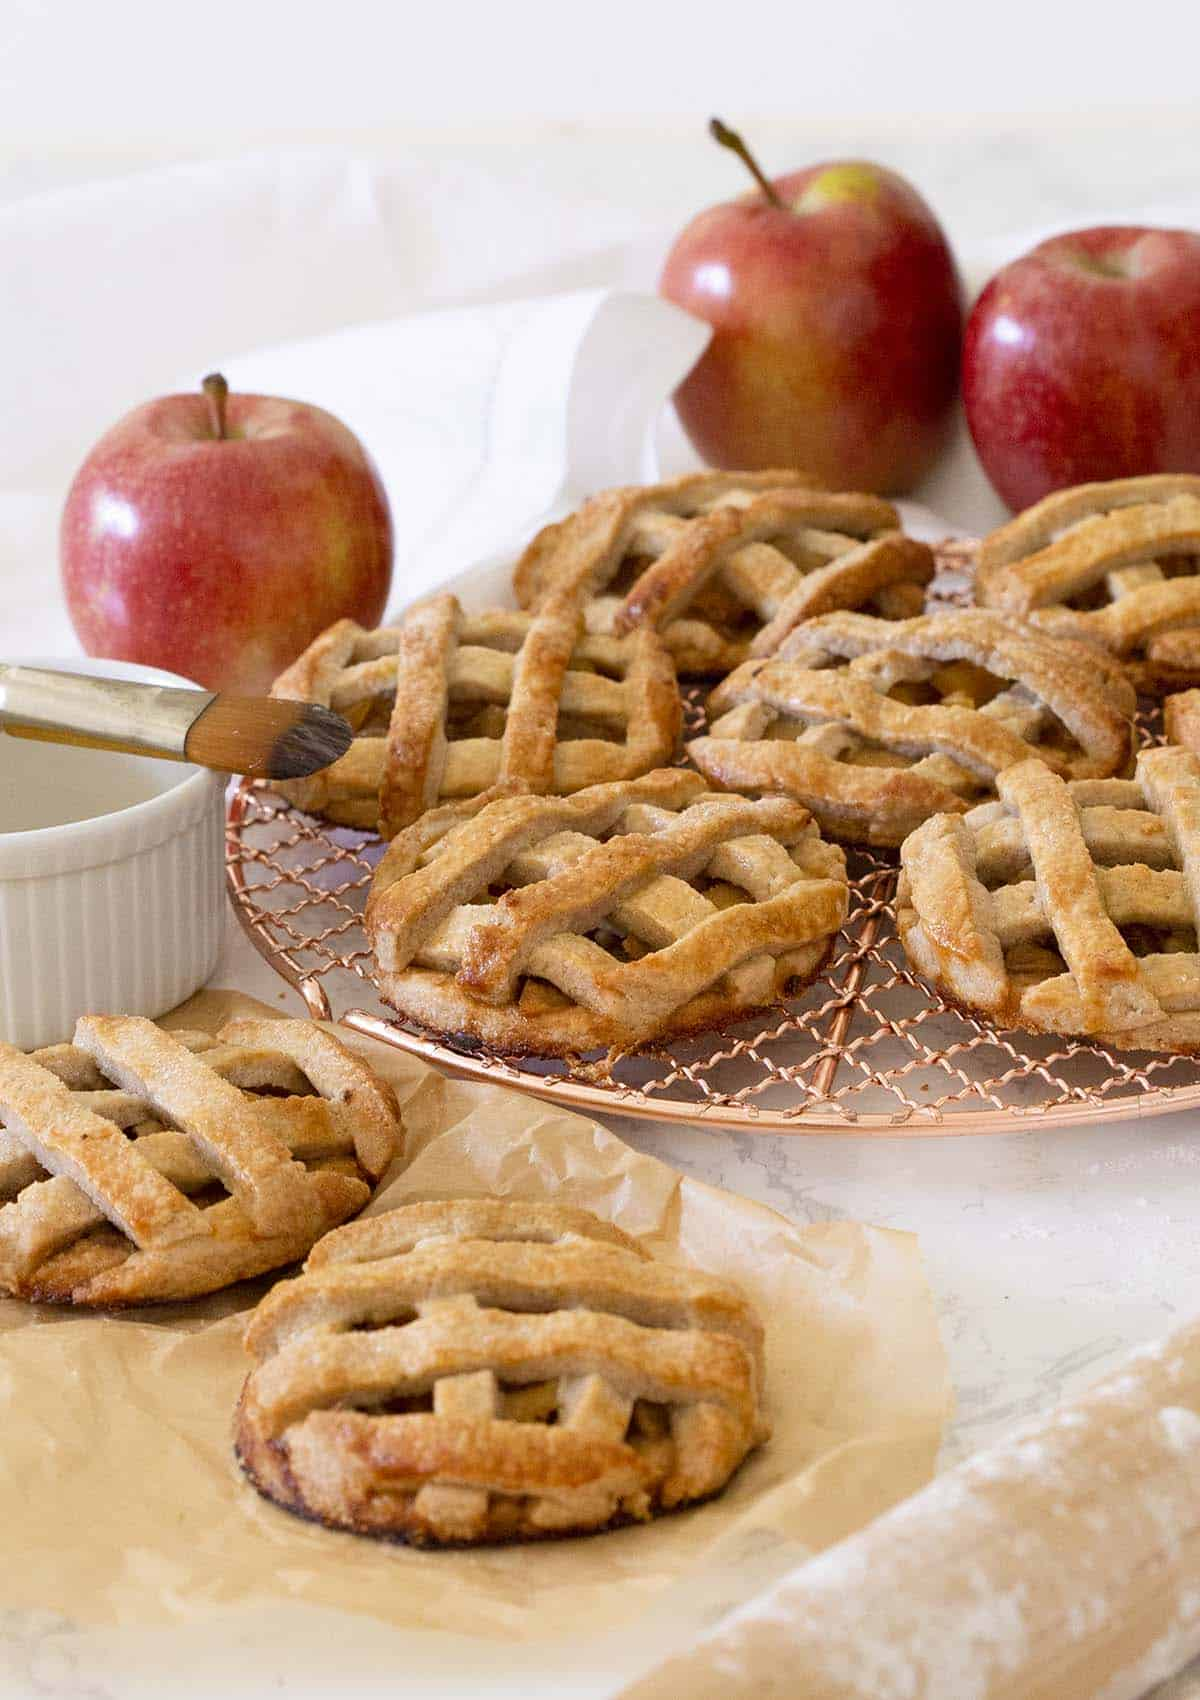 A group of mini apple pies on a copper cooking rack.